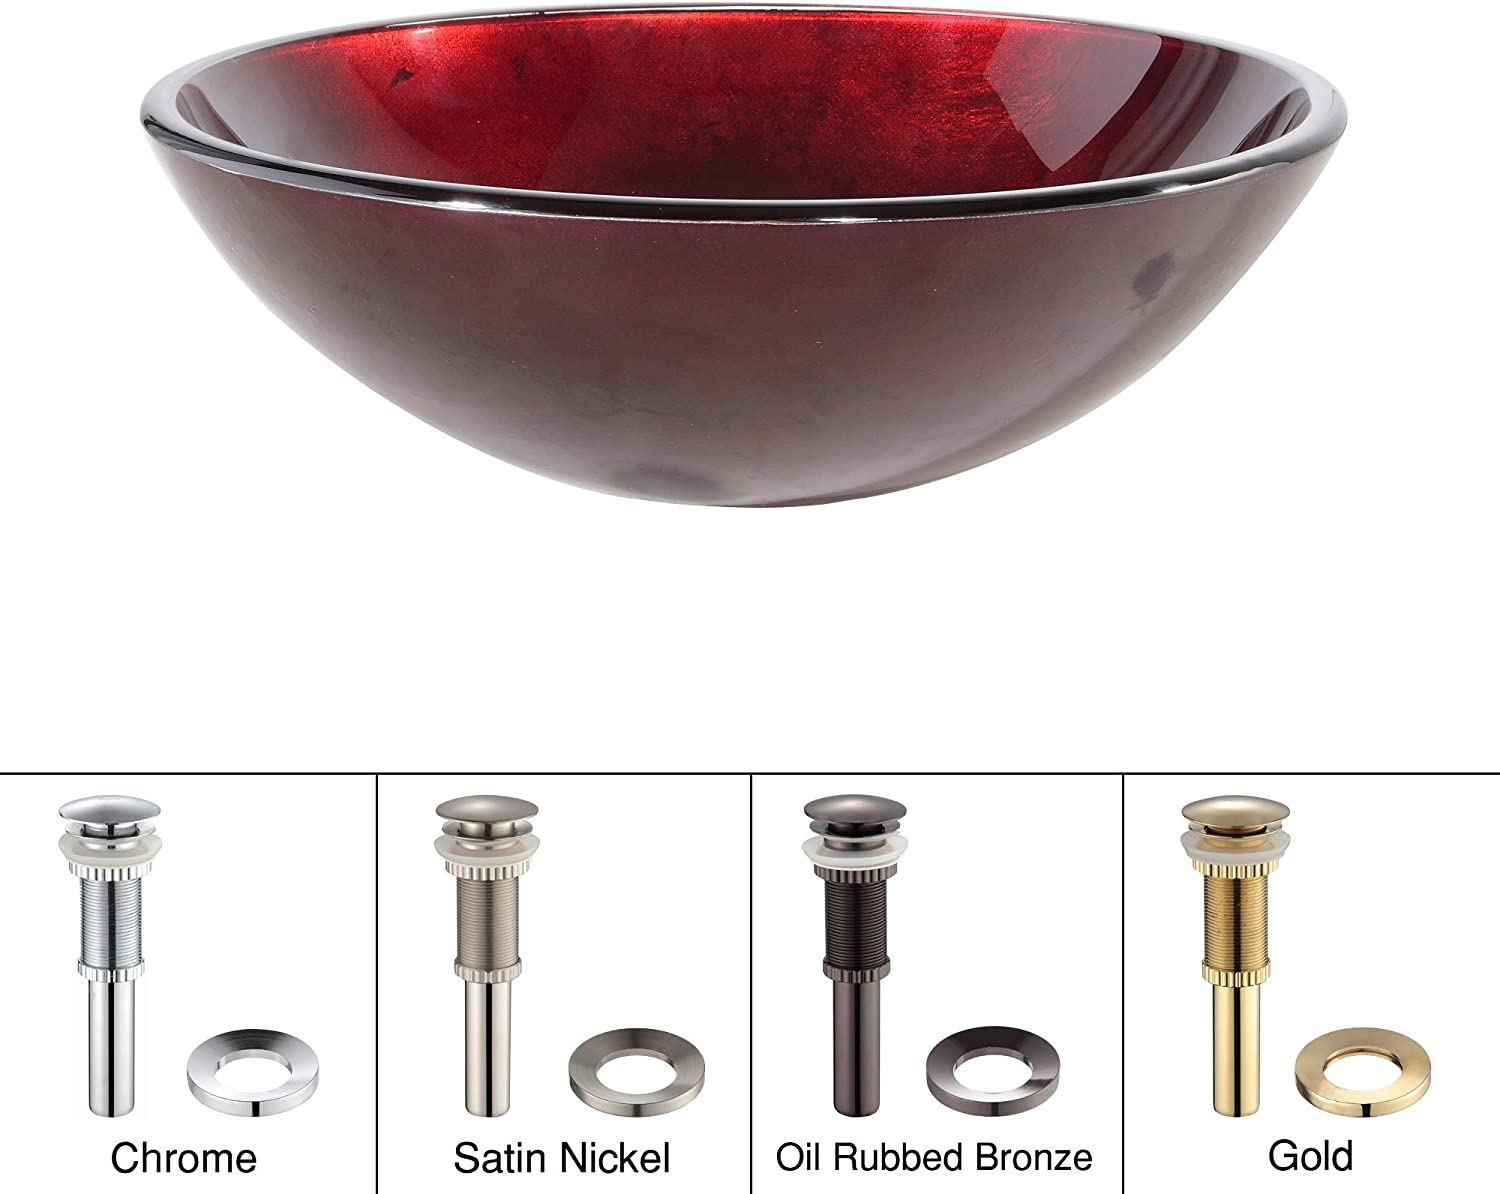 Kraus GV-200-ORB Irruption Red Glass Vessel Bathroom Sink with PU-MR Oil Rubbed Bronze